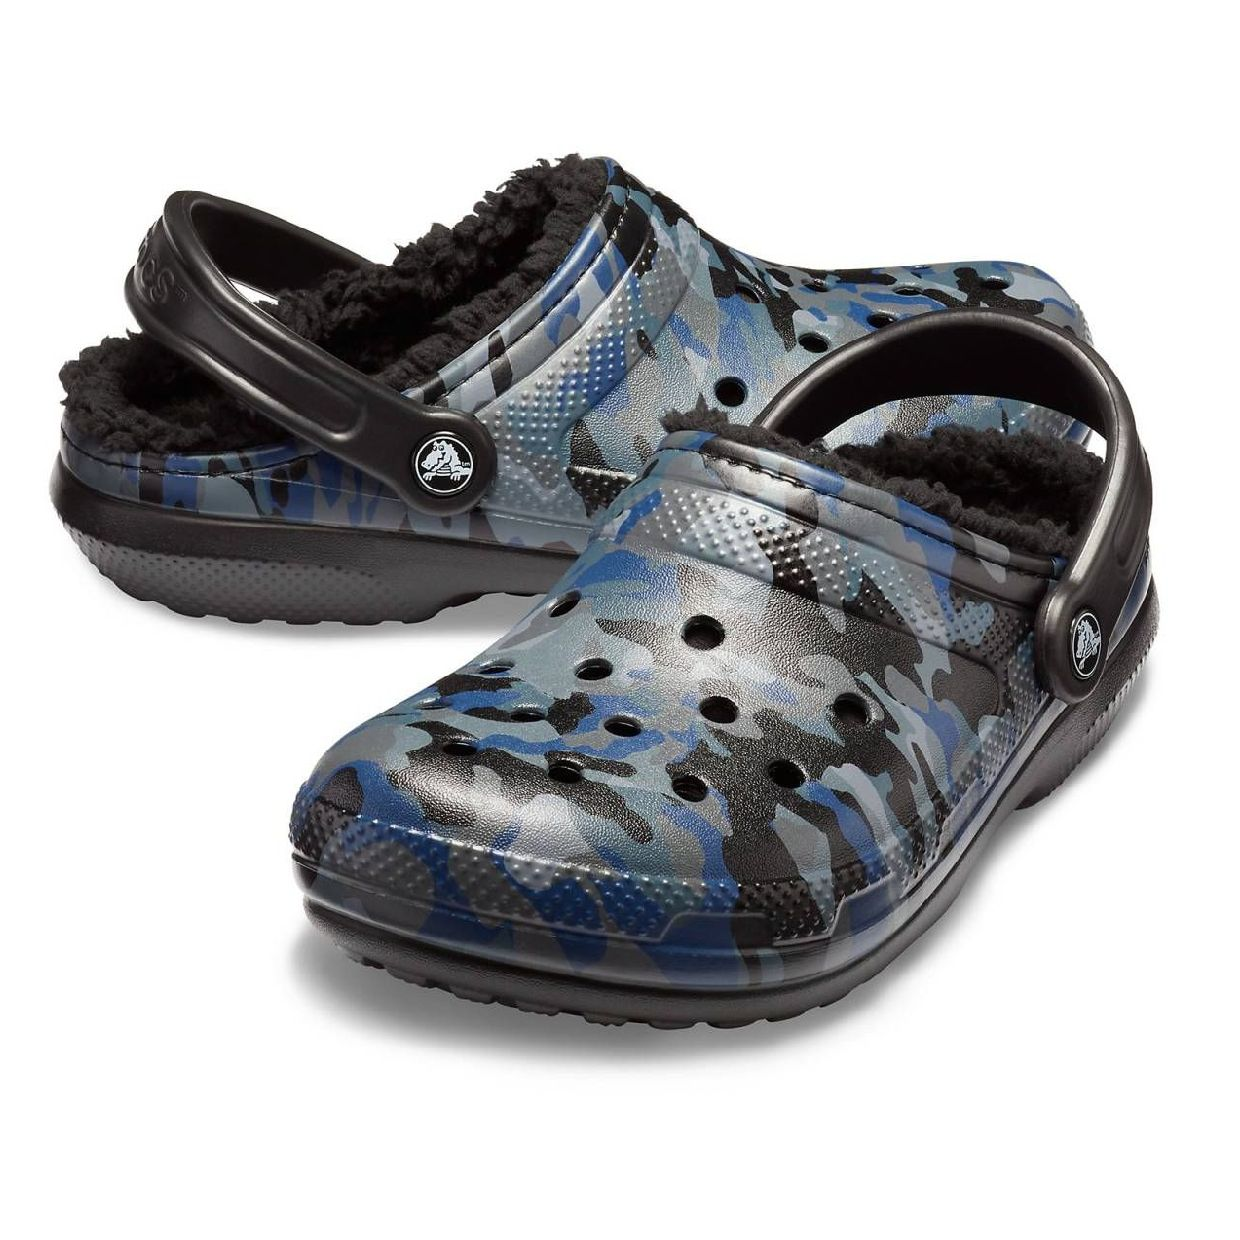 Crocs Classic Lined Graphic II Clog Clogs Synthetik Unisex Schuhe HW19